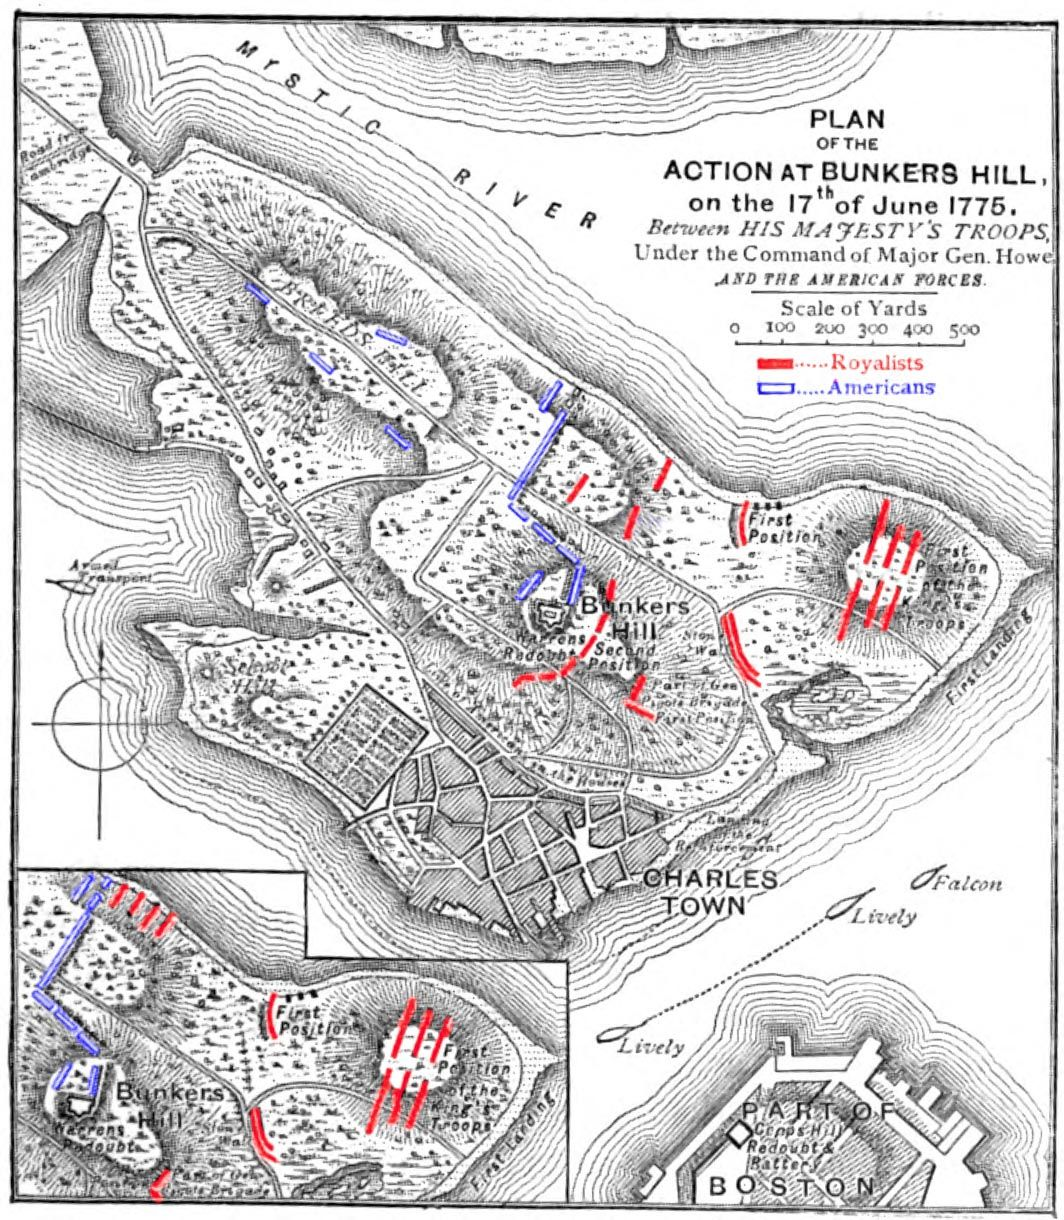 an analysis of the battle of bunker hill in united states Detailsthey stood for liberty, and fought against tyrannyproduct descriptionit is the morning of june 17, 1775 the previous night, under the cover of darkness, the colonial patriots had quickly constructed an impromptu fortification on breed's hill, and now await a full assault by the king's soldiers – the best equipped and most feared fighting force.